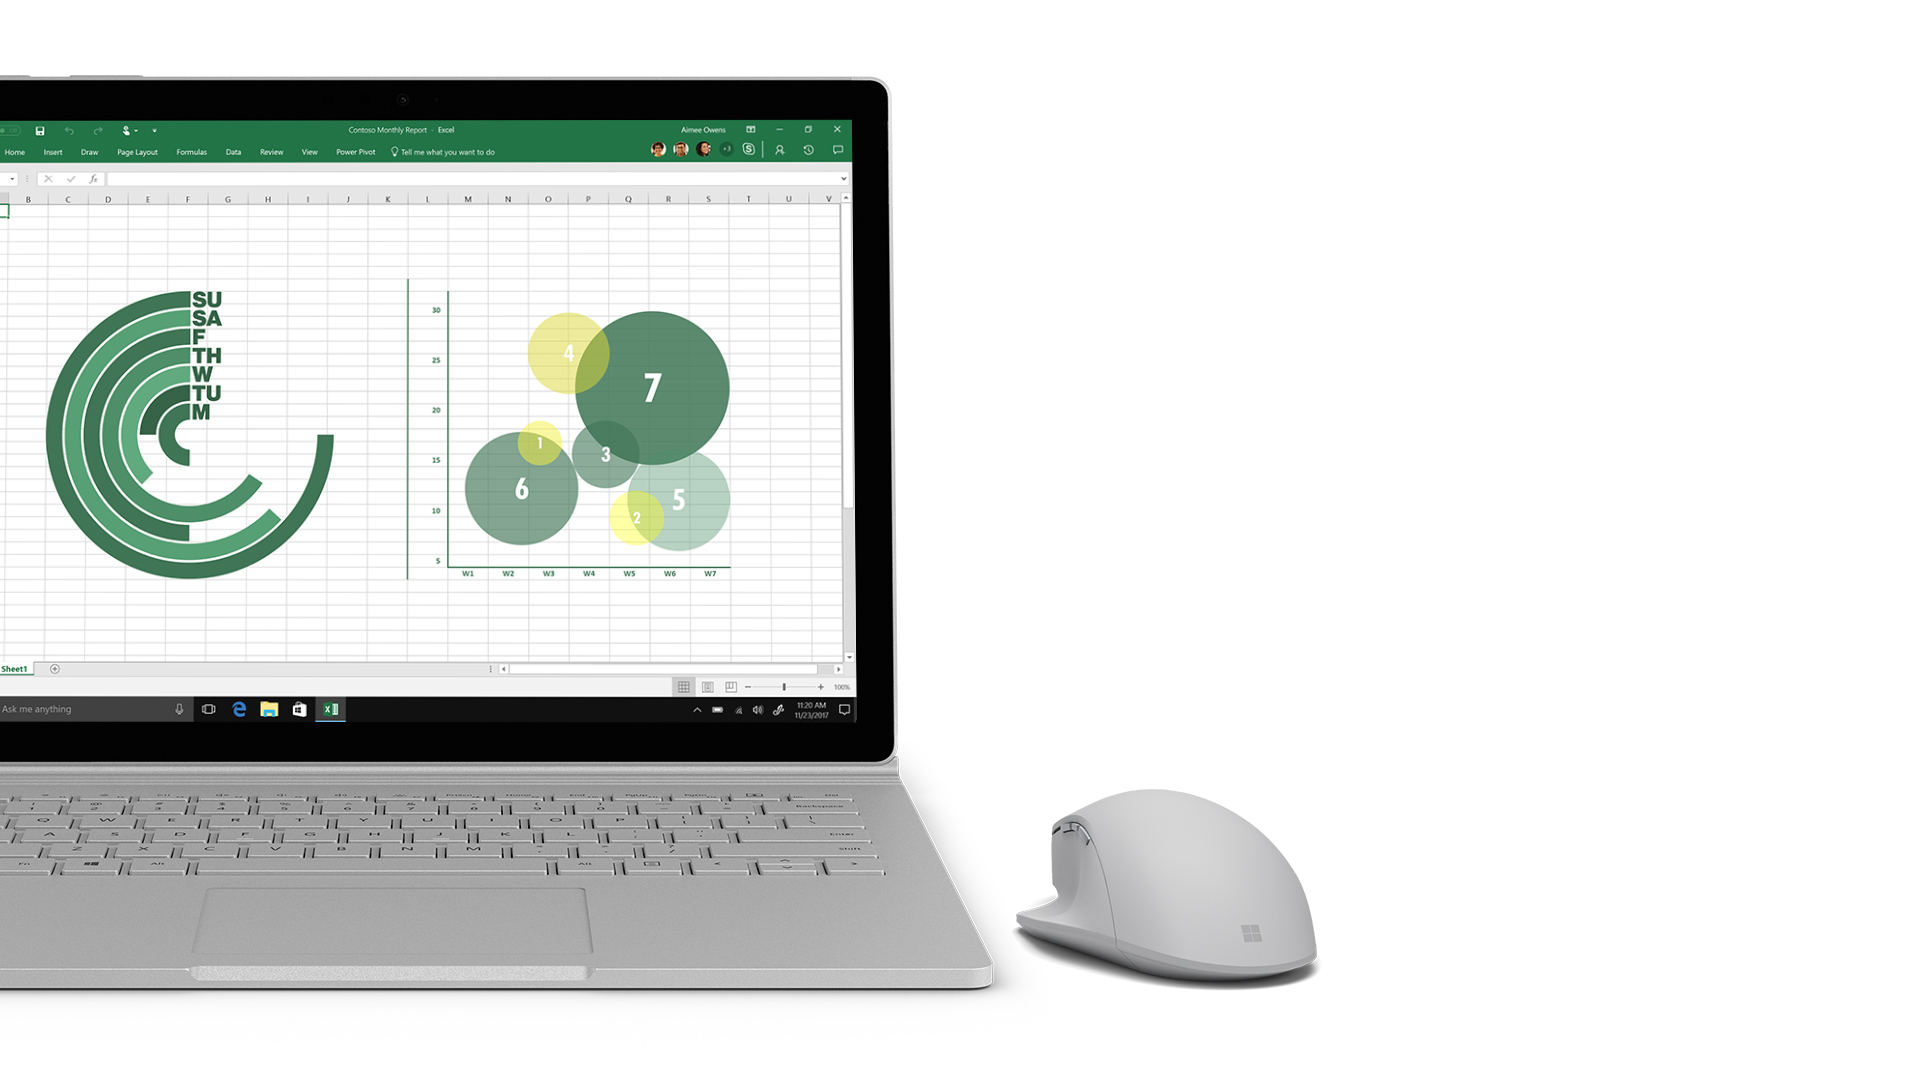 Captura de pantalla de Excel en Surface.